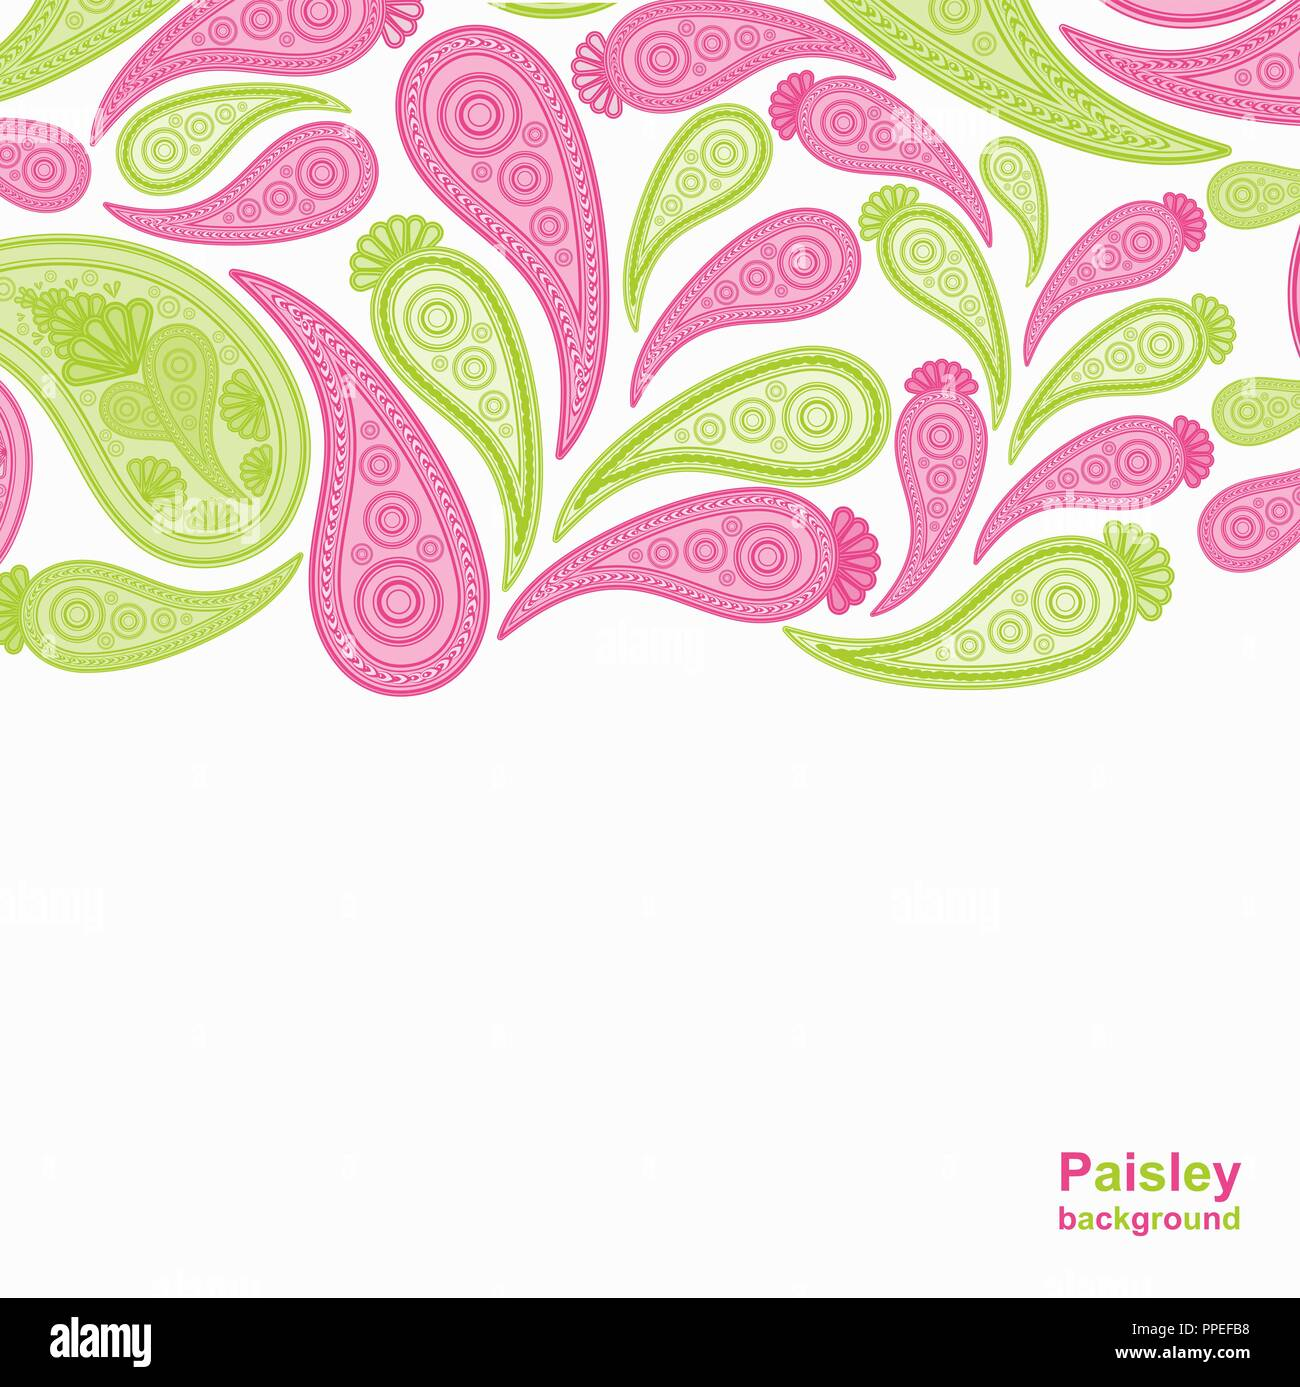 Paisley Pink And Green Vector Background Floral Abstract Design Pattern Indian Art Ornament Stock Vector Image Art Alamy